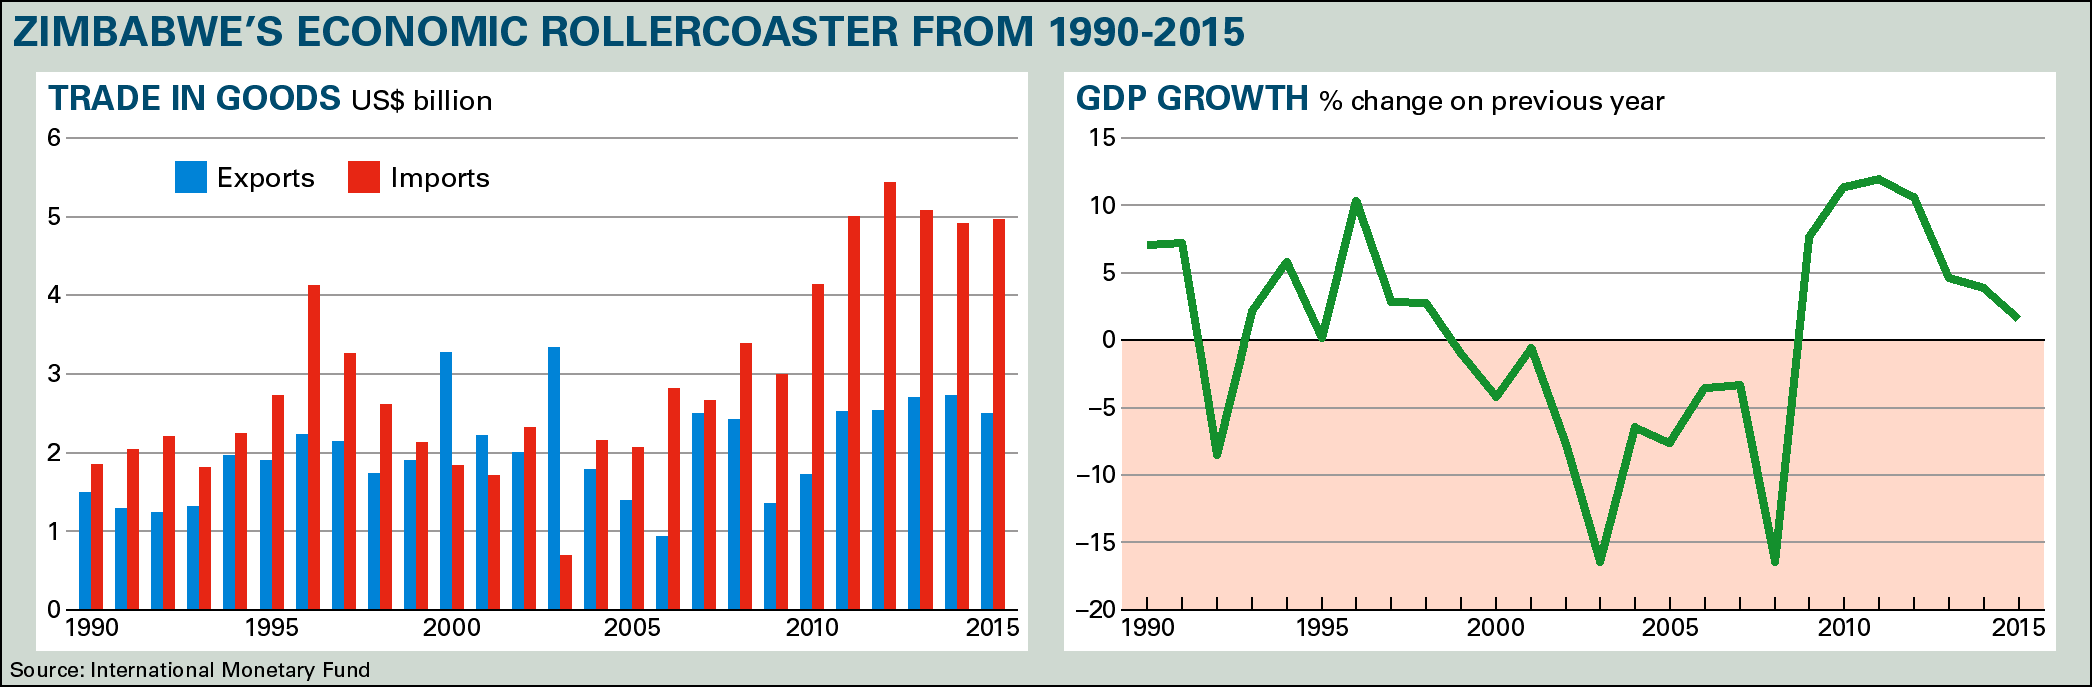 Zimbabwe's economic rollercoaster from 1990-2015